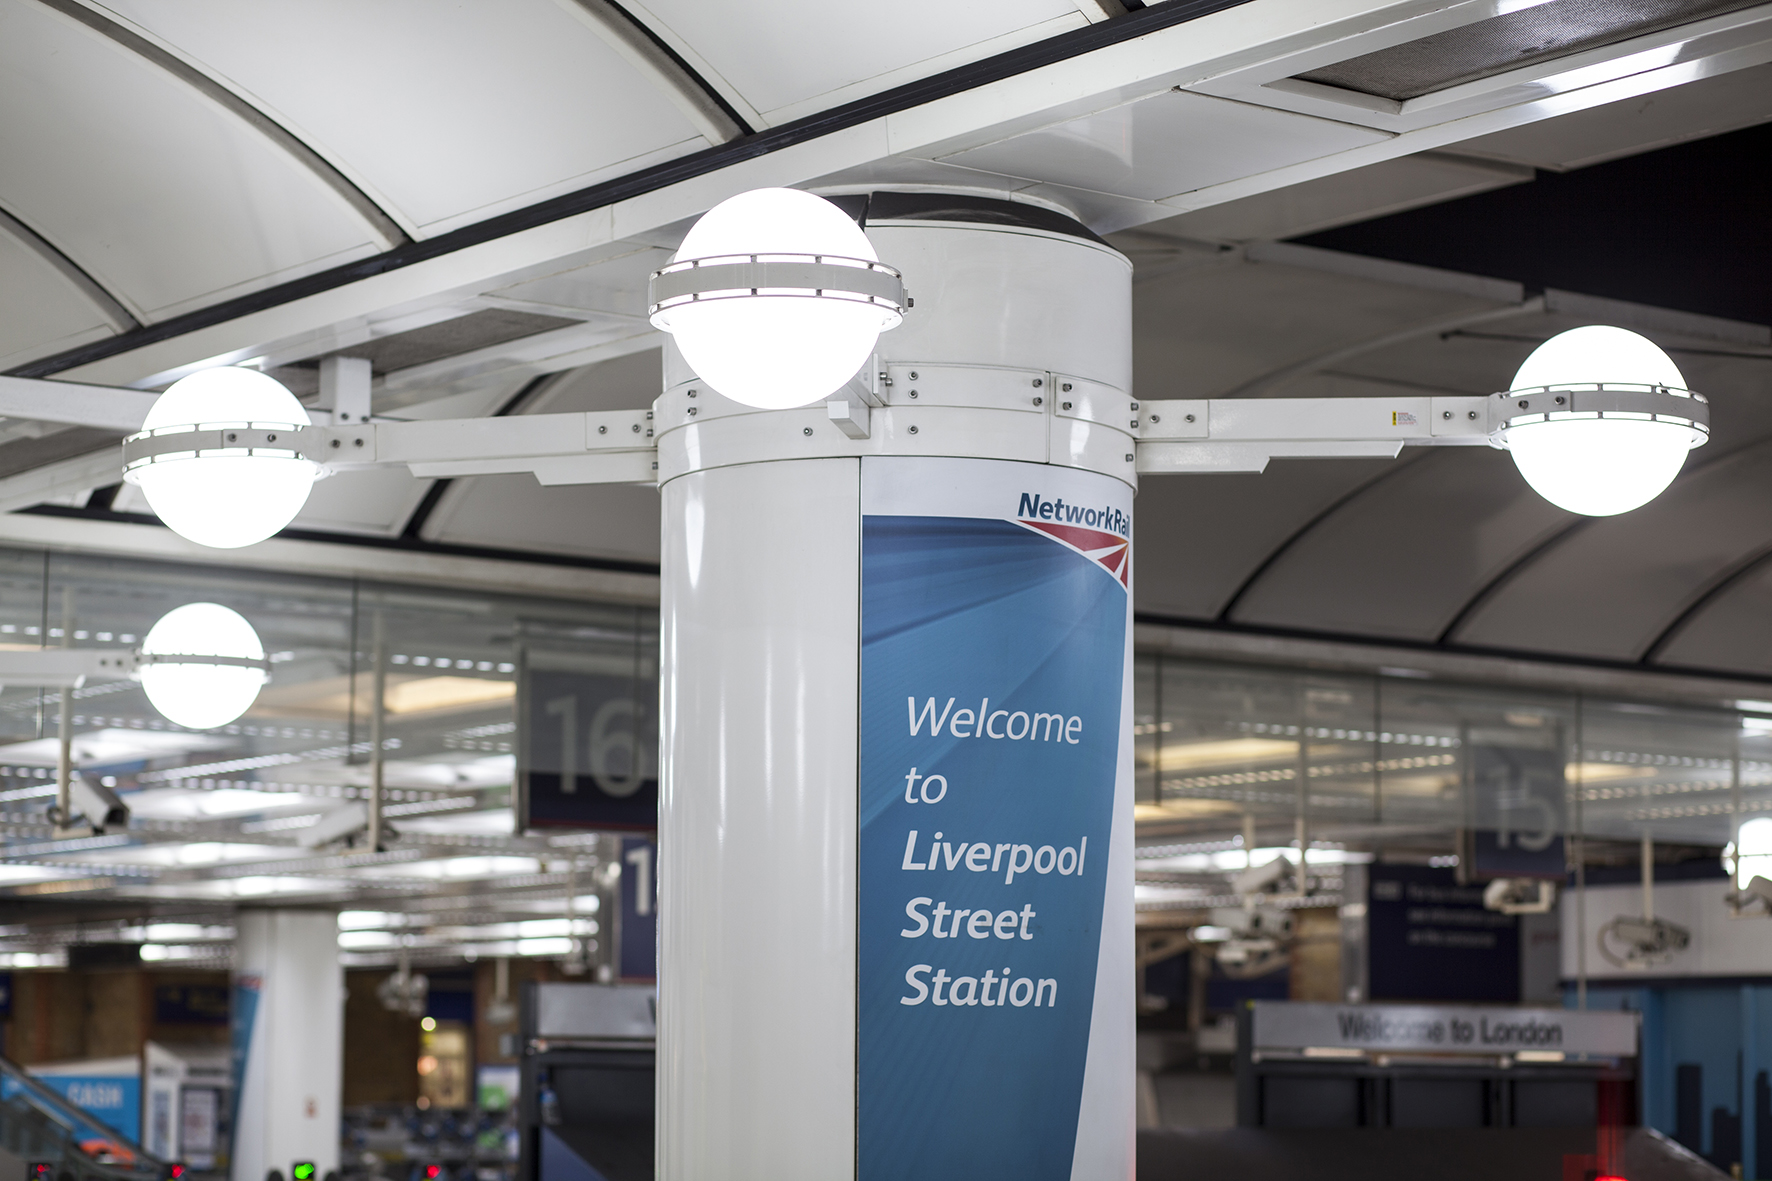 Liverpool Street Station Installs Goodlight Led Lighting